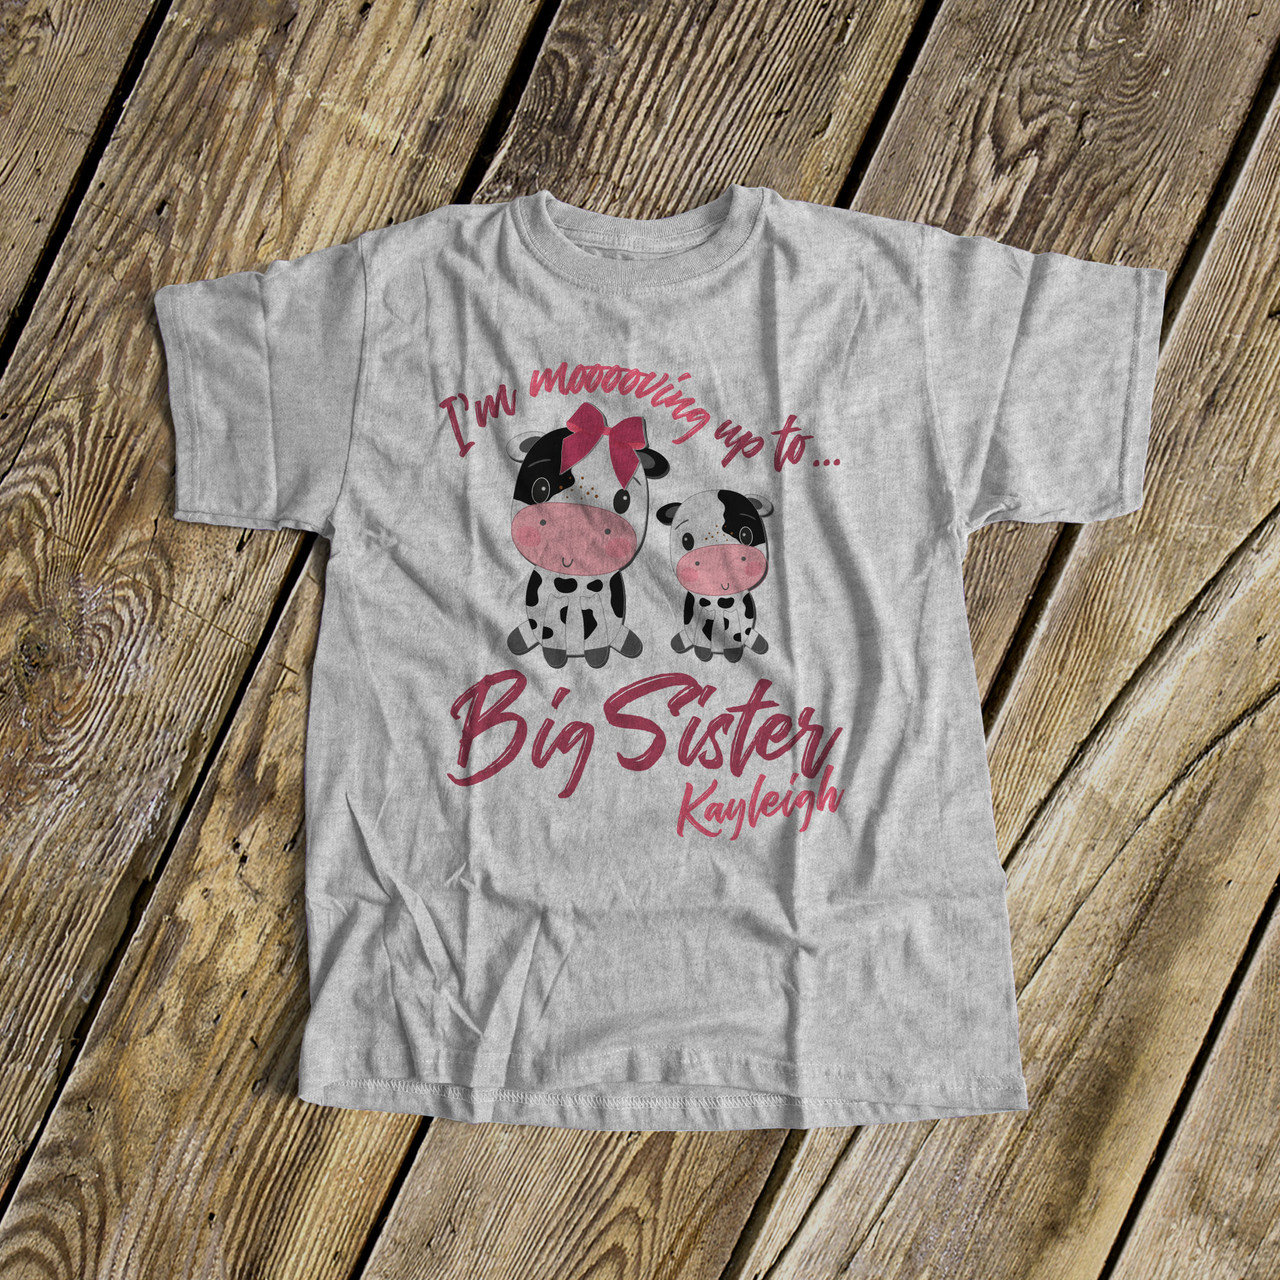 Just Like My Grandpa Toddler//Kids Raglan T-Shirt Im Going to Love Cows When I Grow Up